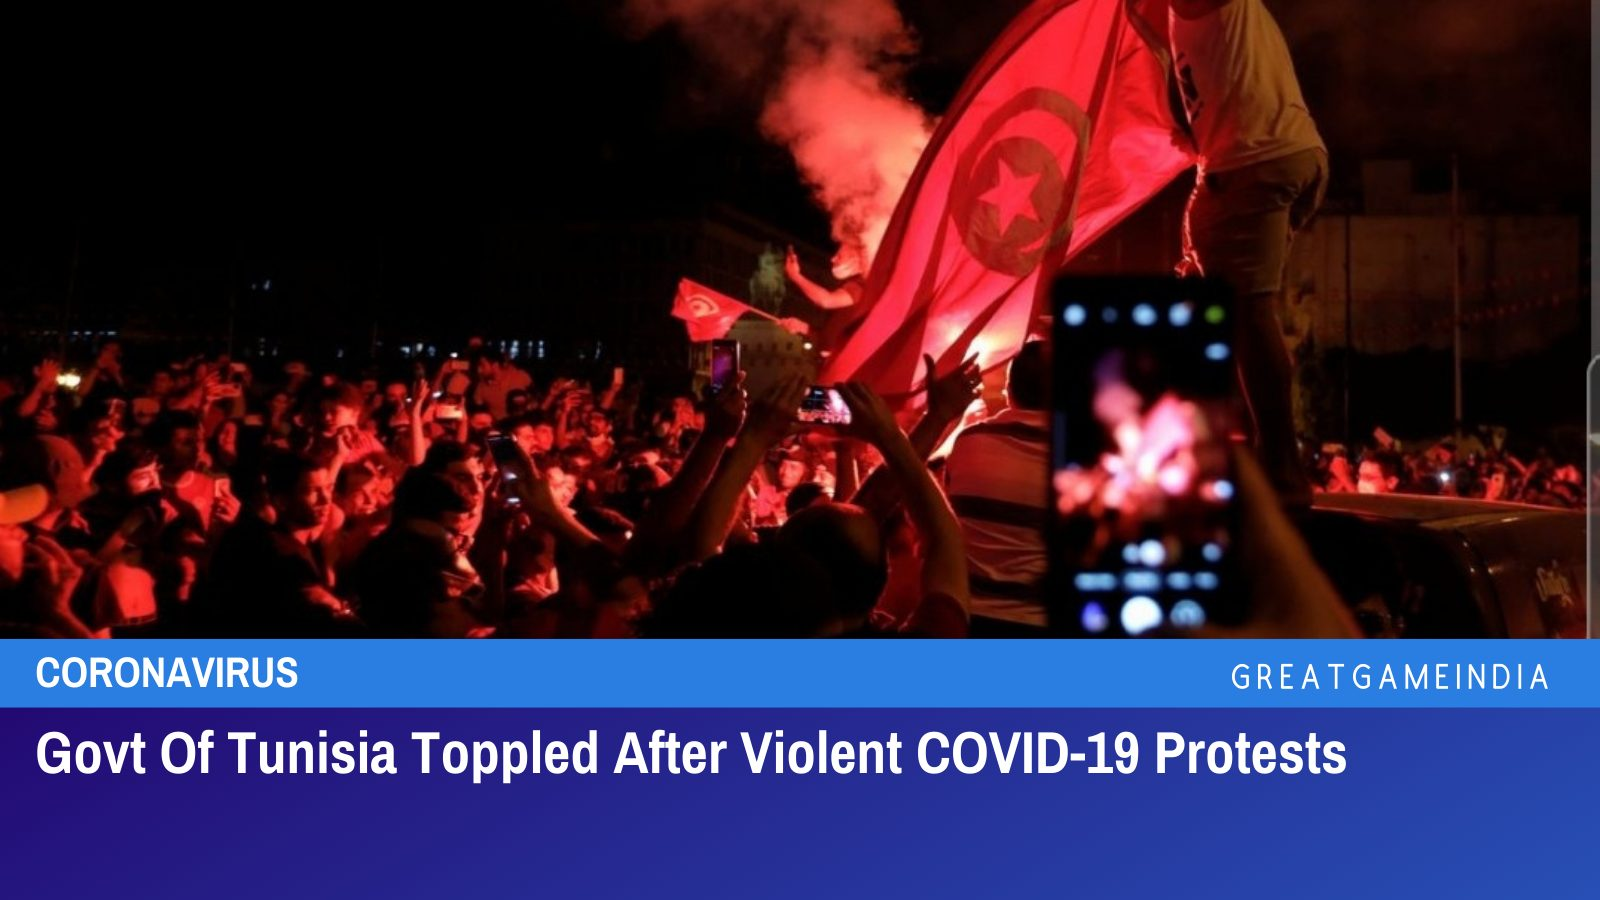 Govt Of Tunisia Toppled After Violent COVID-19 Protests